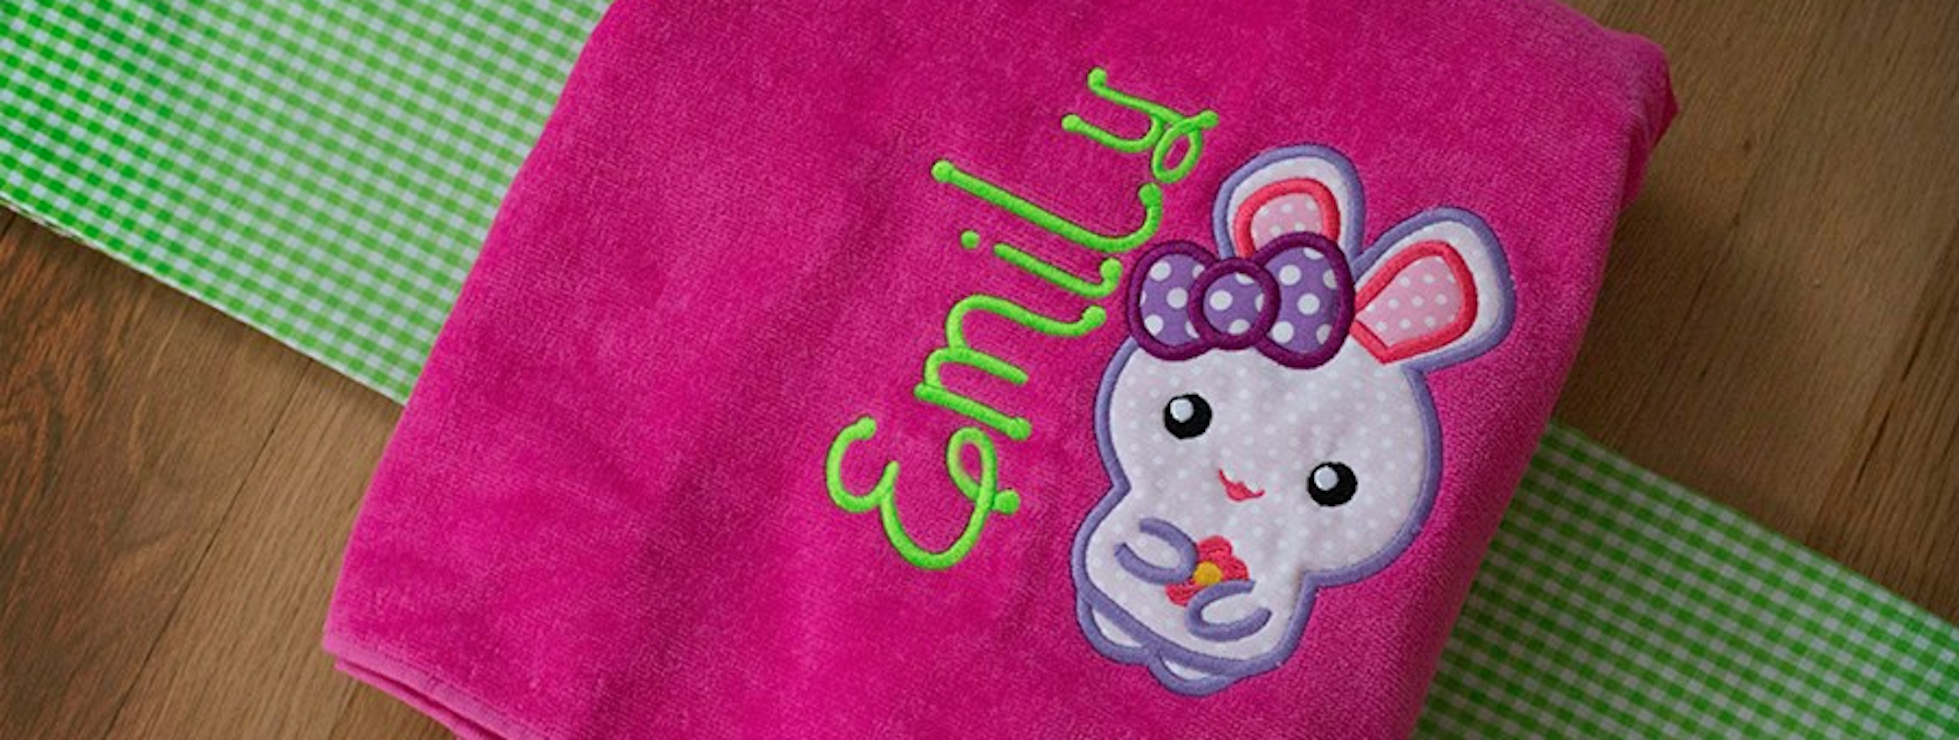 Bunny Applique - Free Embroidery Designs